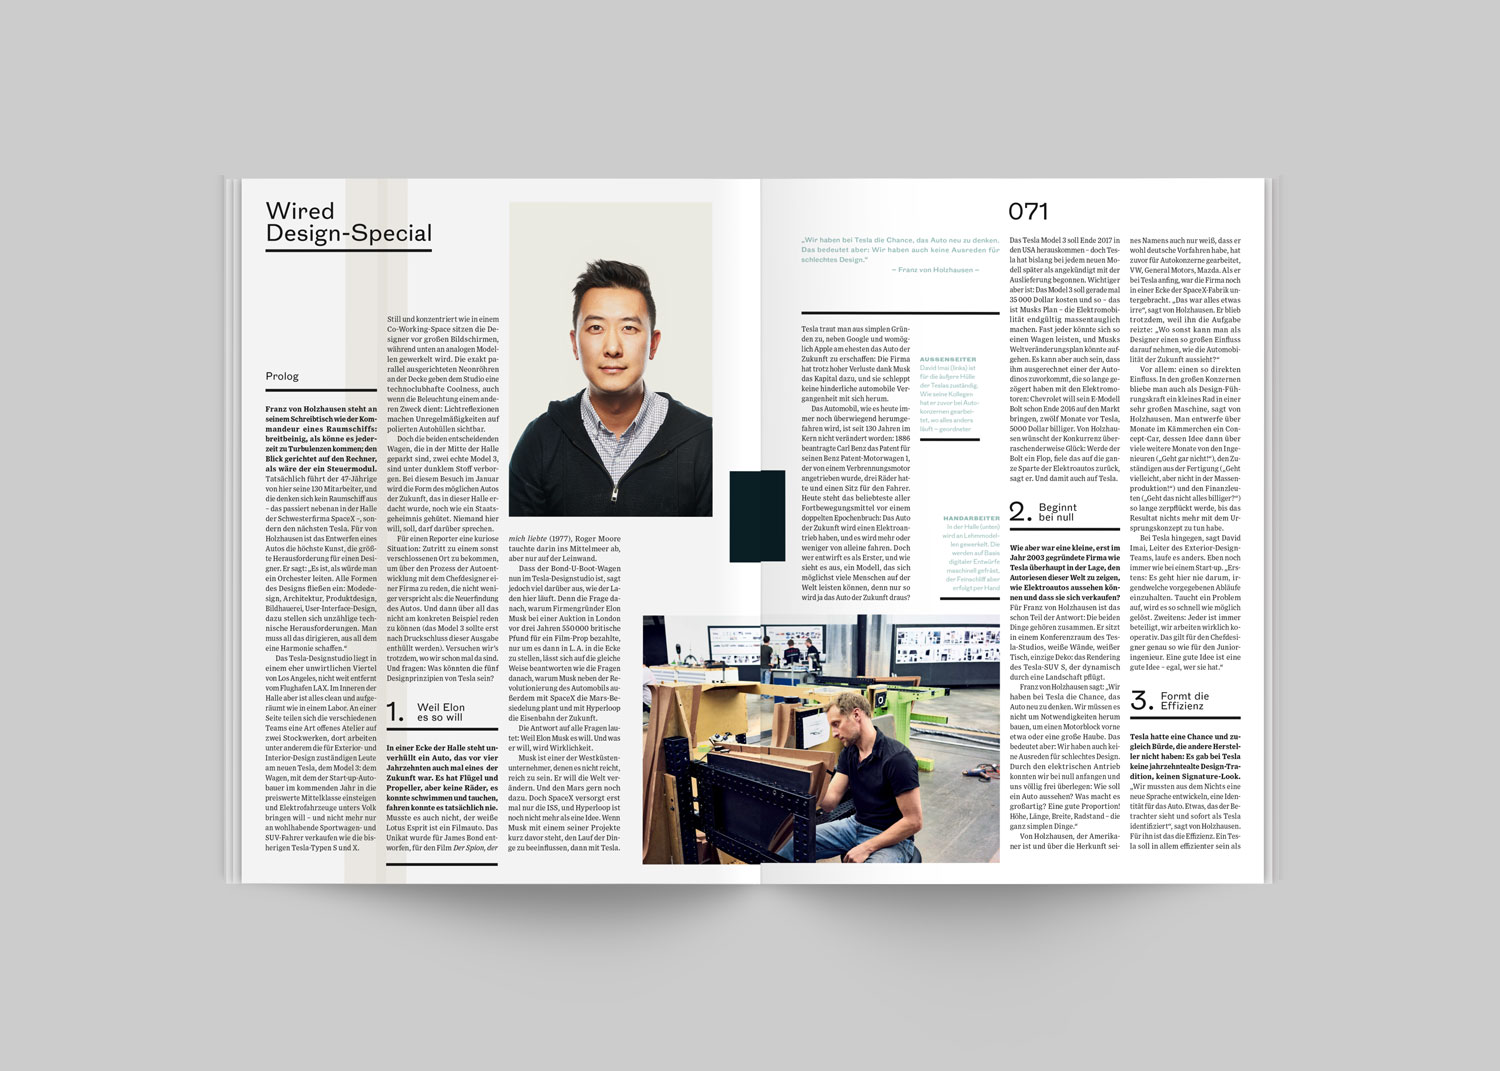 Magnificent Wired Magazine Cover Oct 2013 Ornament - Electrical ...